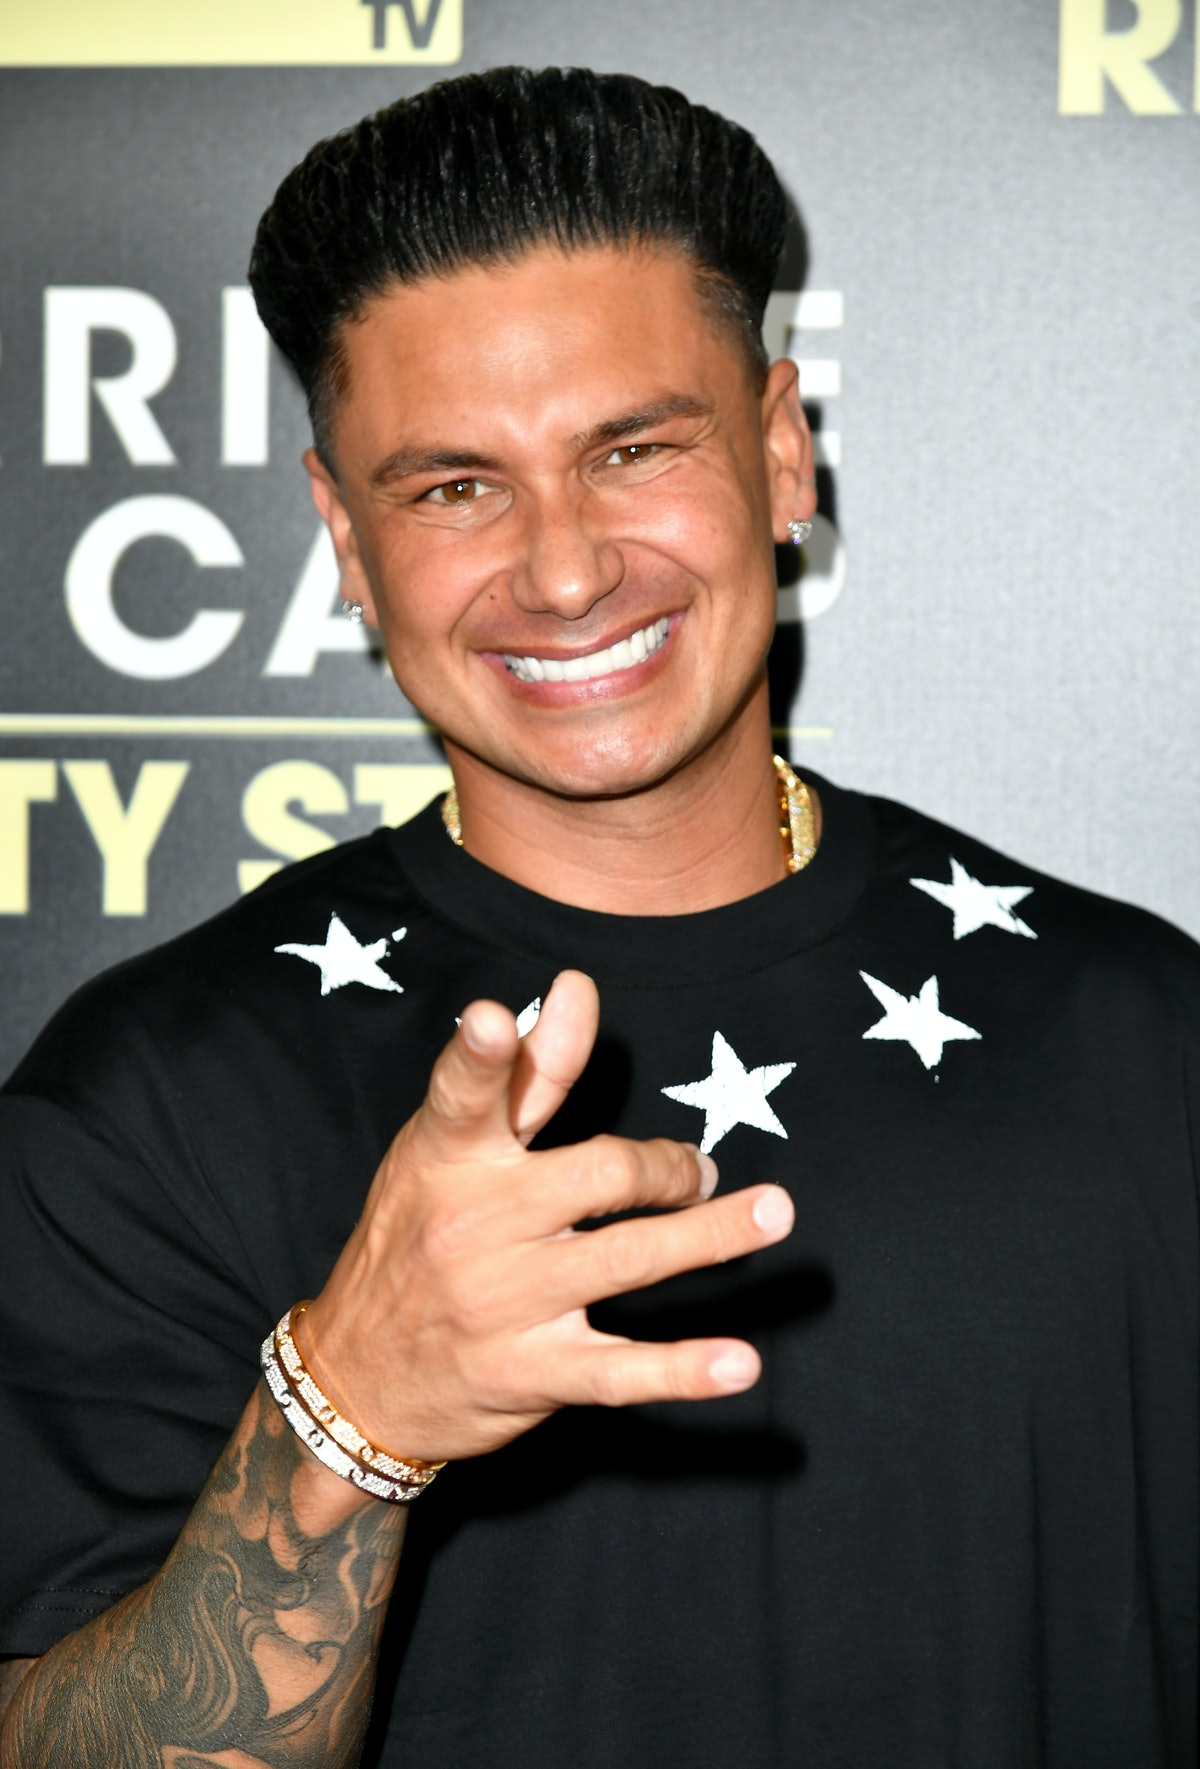 Is Pauly D From 'Jersey Shore' Dating Anyone Now? The 'Double Shot At Love' Star Knows What He Wants In A Partner